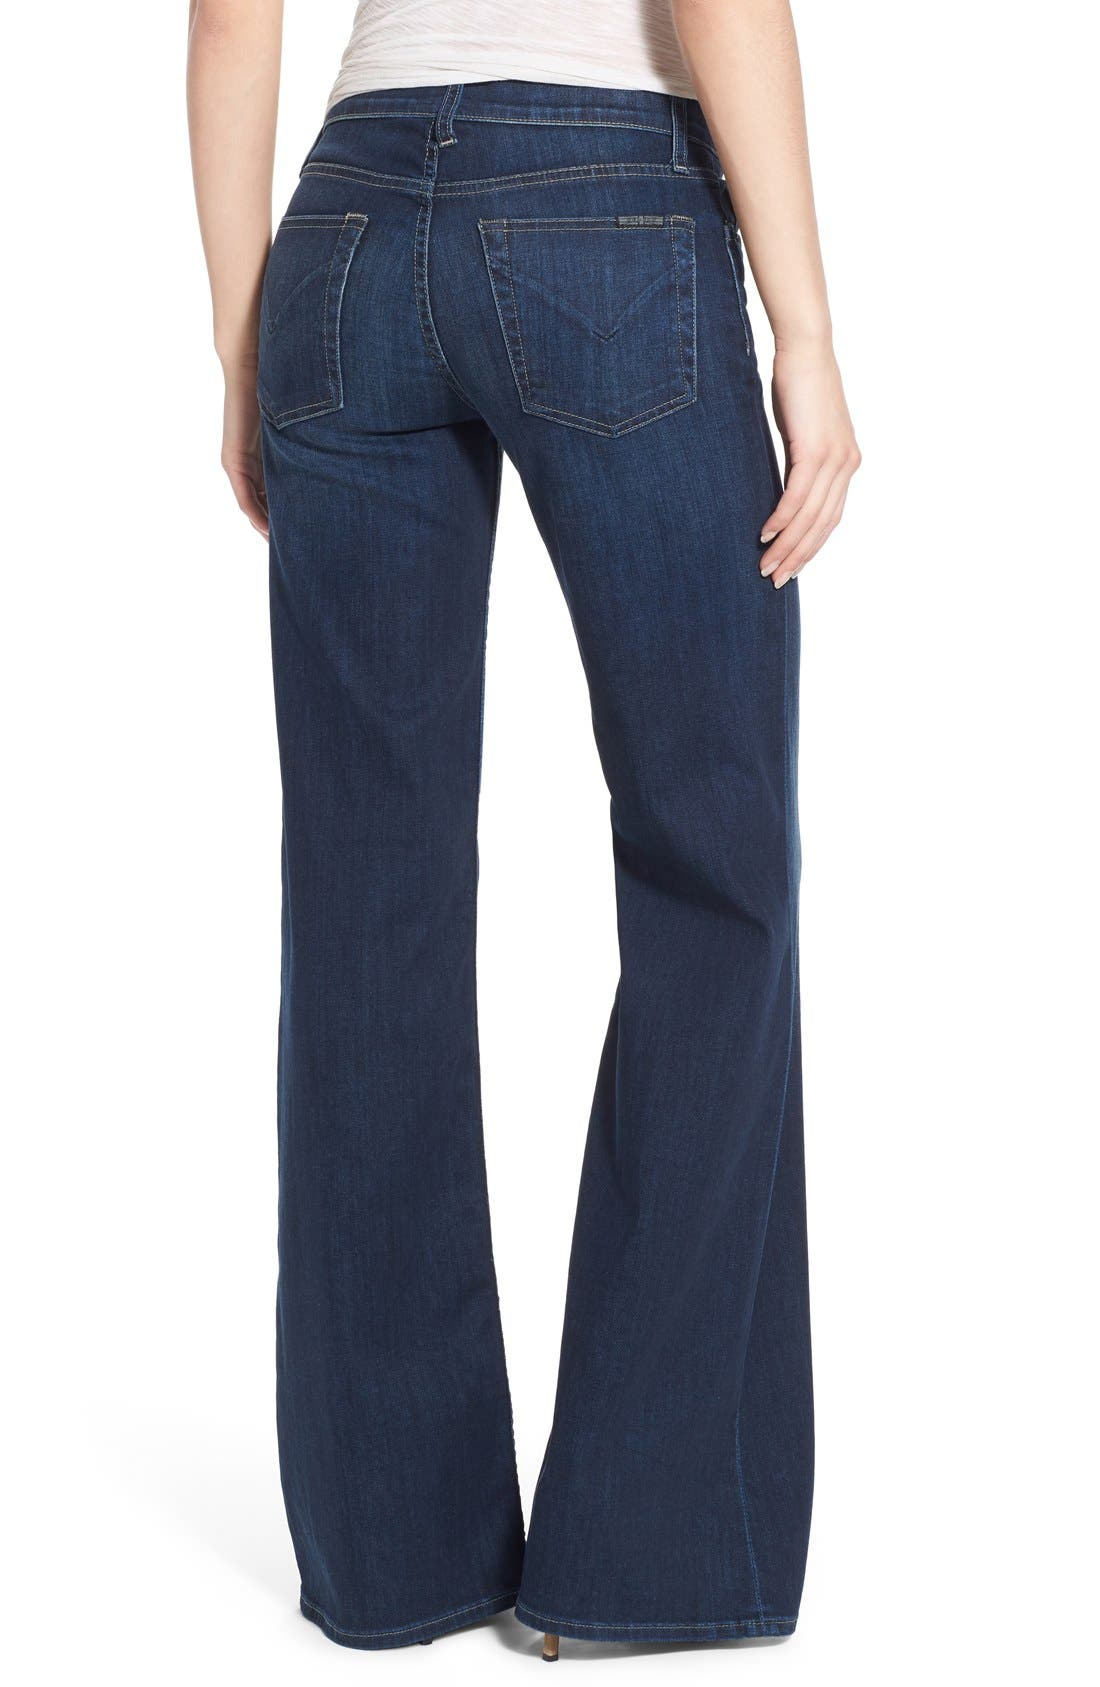 Alternate Image 2  - Hudson Jeans Piper Wide Leg Jeans (Thruway)